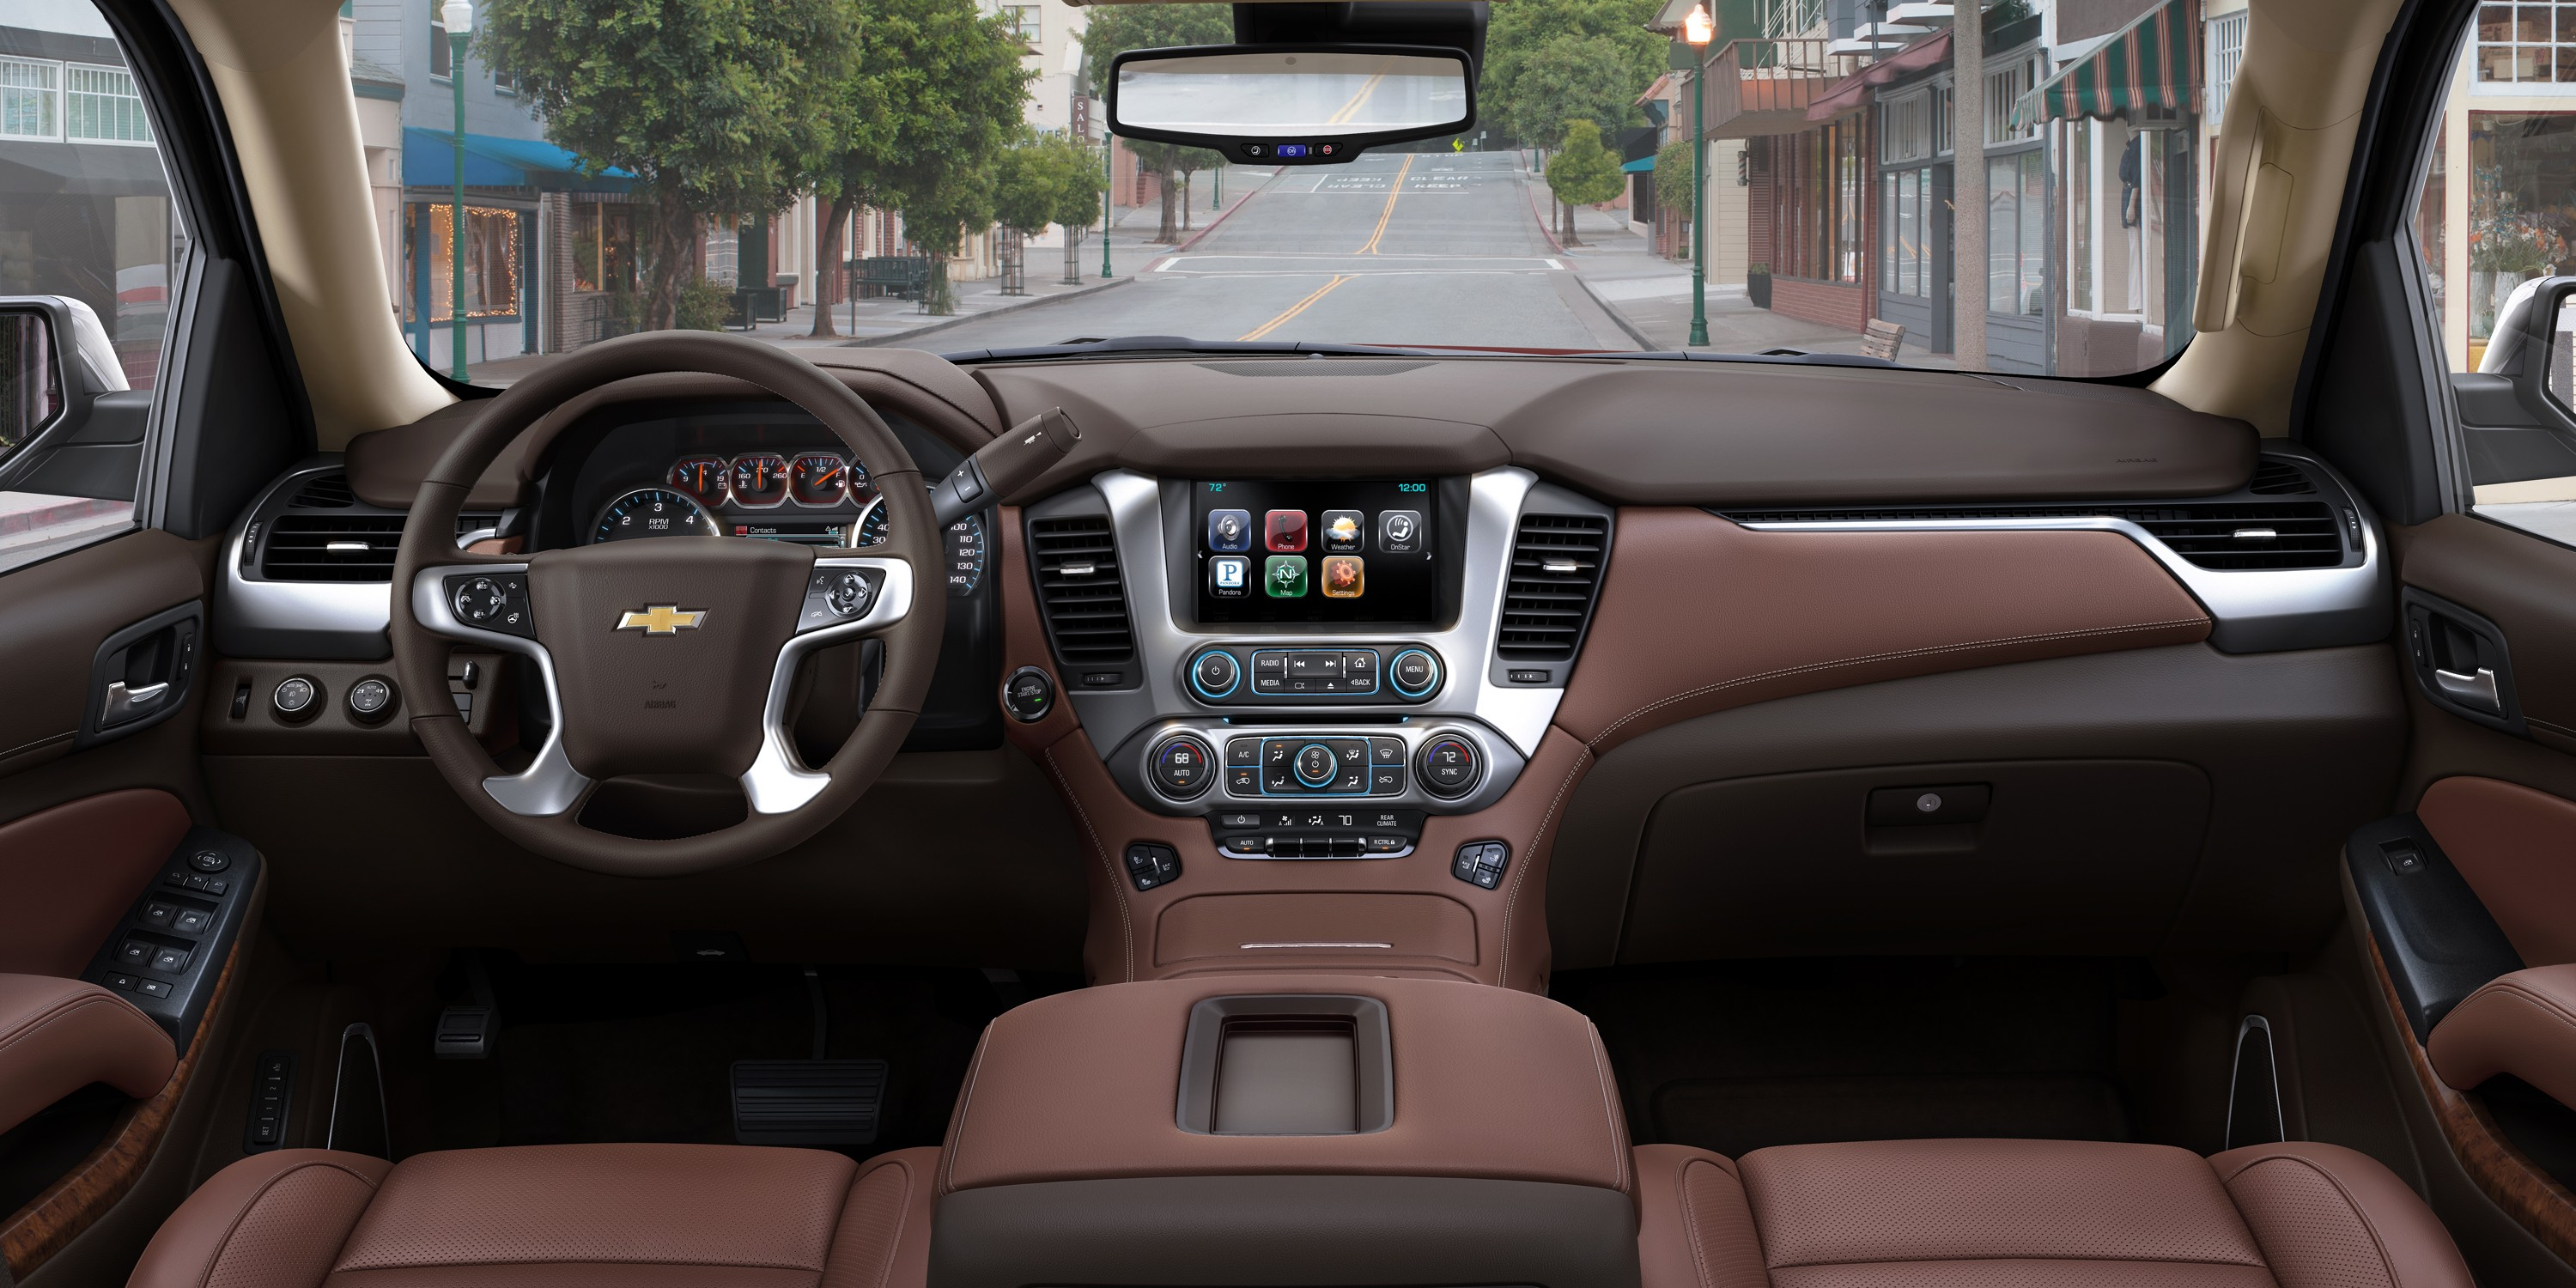 The 2017 Tahoe Features An All New Interior With Functional Technology And Creature Comforts